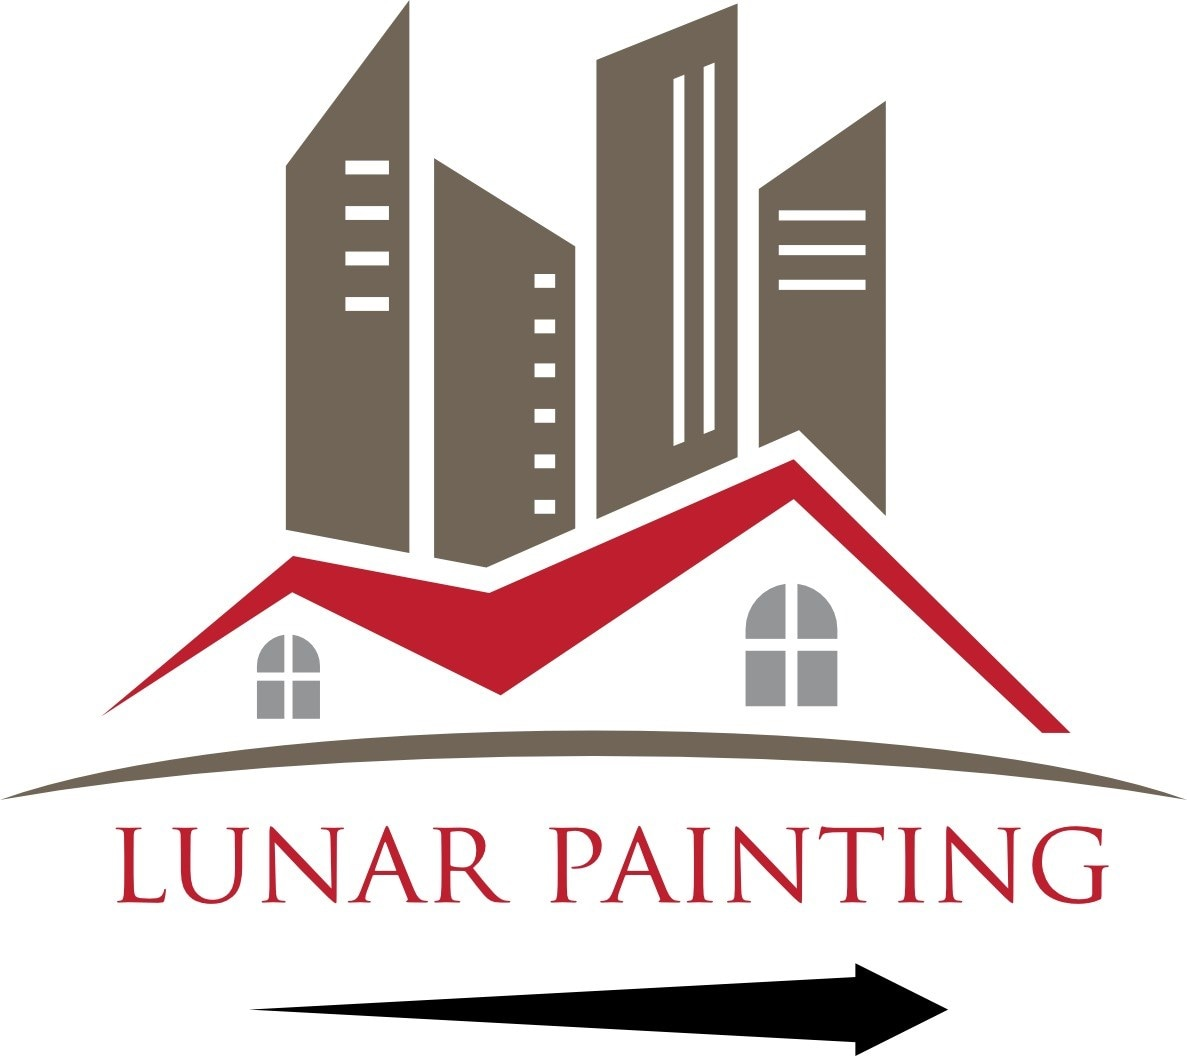 Lunar Painting